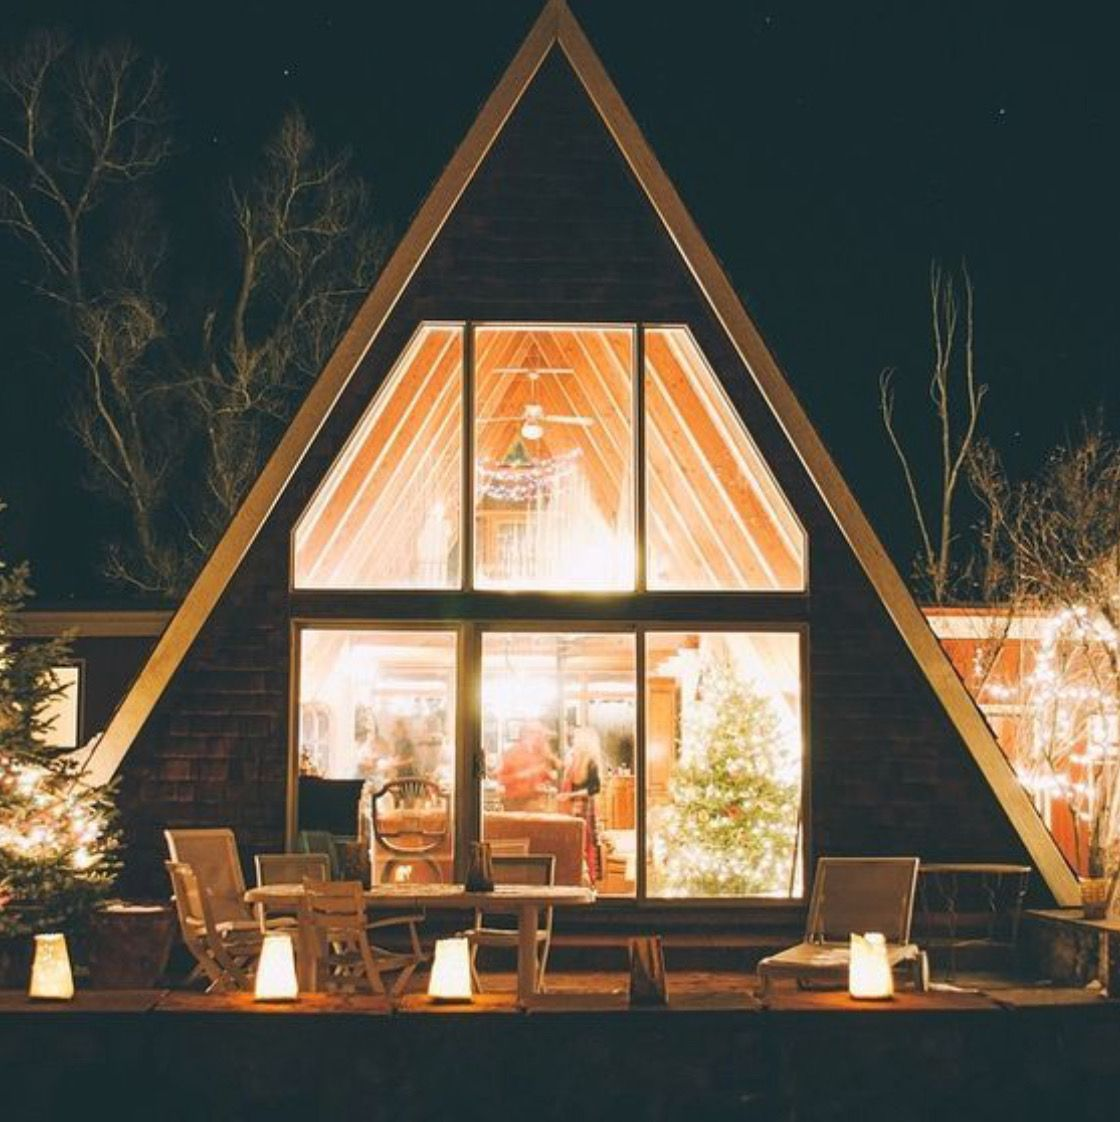 Pin by Larry on A-Frame Life | Pinterest | Home, Cabin and Frame Lighting Ideas For Log Cabin Html on log storage ideas, log cabin exterior lighting, campground lighting ideas, log cabin ceiling lighting, craftsman style lighting ideas, custom home lighting ideas, inexpensive lighting ideas, over counter lighting ideas, can lighting ideas, cottage lighting ideas, log home bathrooms, cabin design ideas, wood log ideas, log cabin track lighting, creative lighting ideas, log home kitchens, log cabin wall lighting, do it yourself lighting ideas, log home lighting, lowe's kitchen lighting ideas,